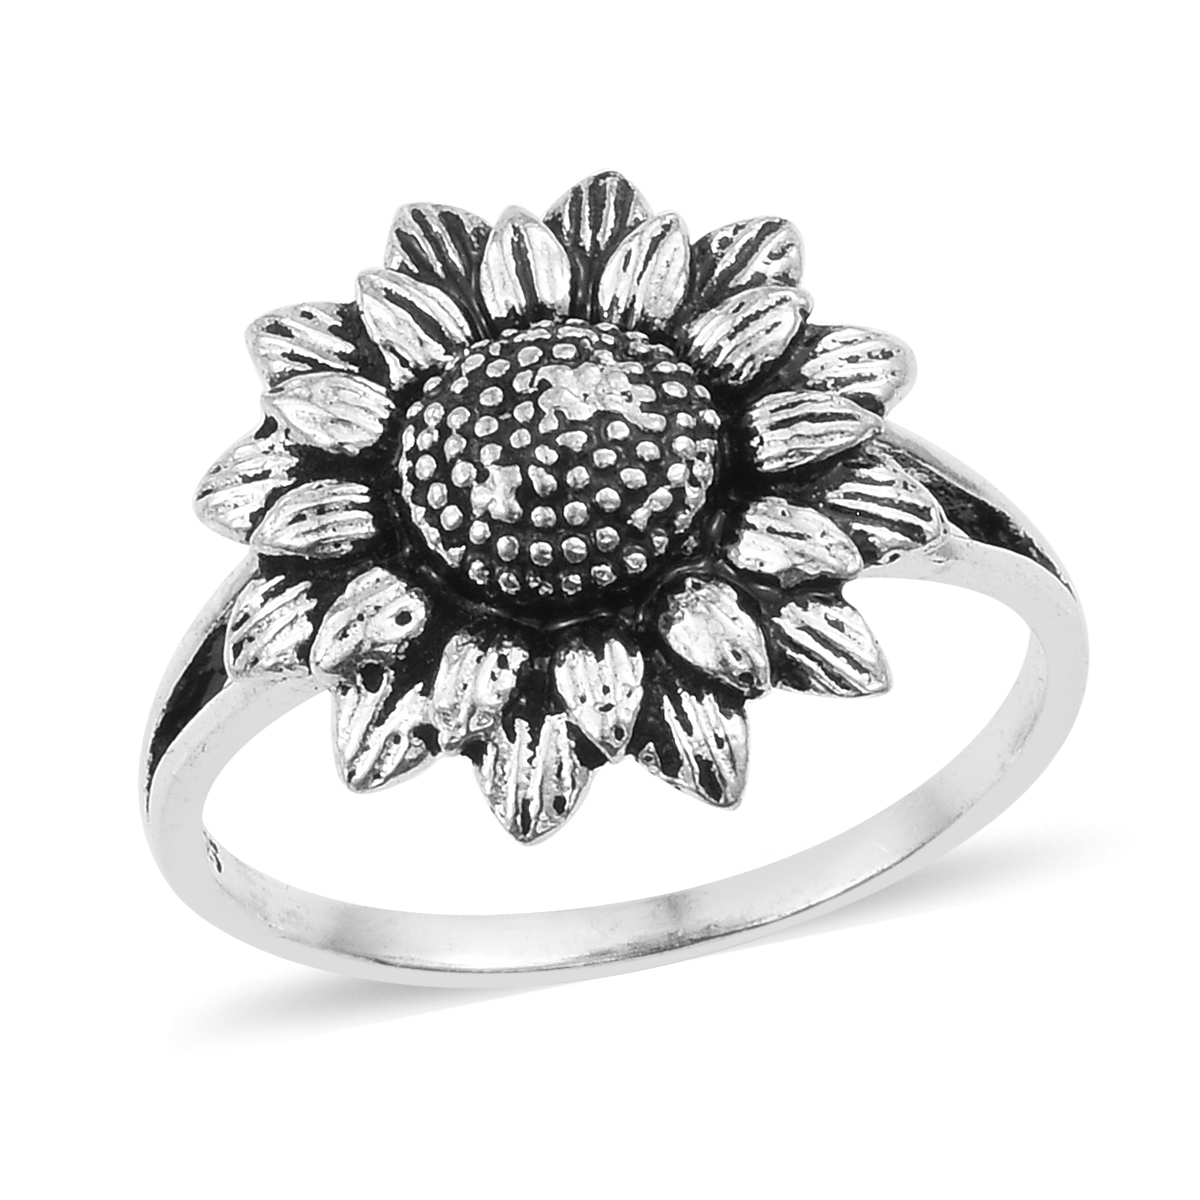 3d191db5f Artisan Crafted Sterling Silver Sunflower Ring (Size 6.0) (Avg 4.2 g) |  Try-On | Promotions | online-store | Shop LC